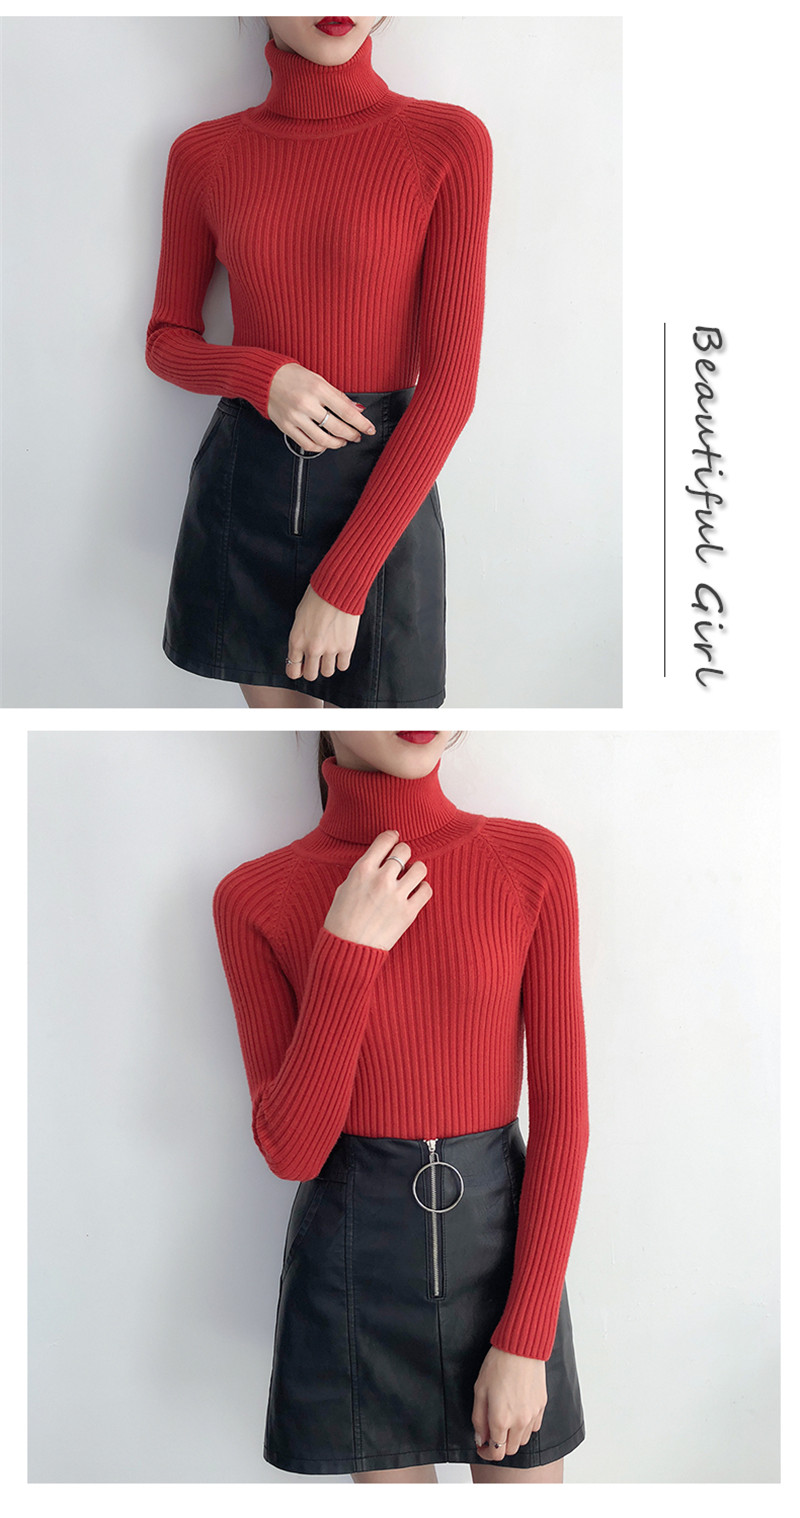 19 Women Sweater casual solid turtleneck female pullover full sleeve warm soft spring autumn winter knitted cotton 16